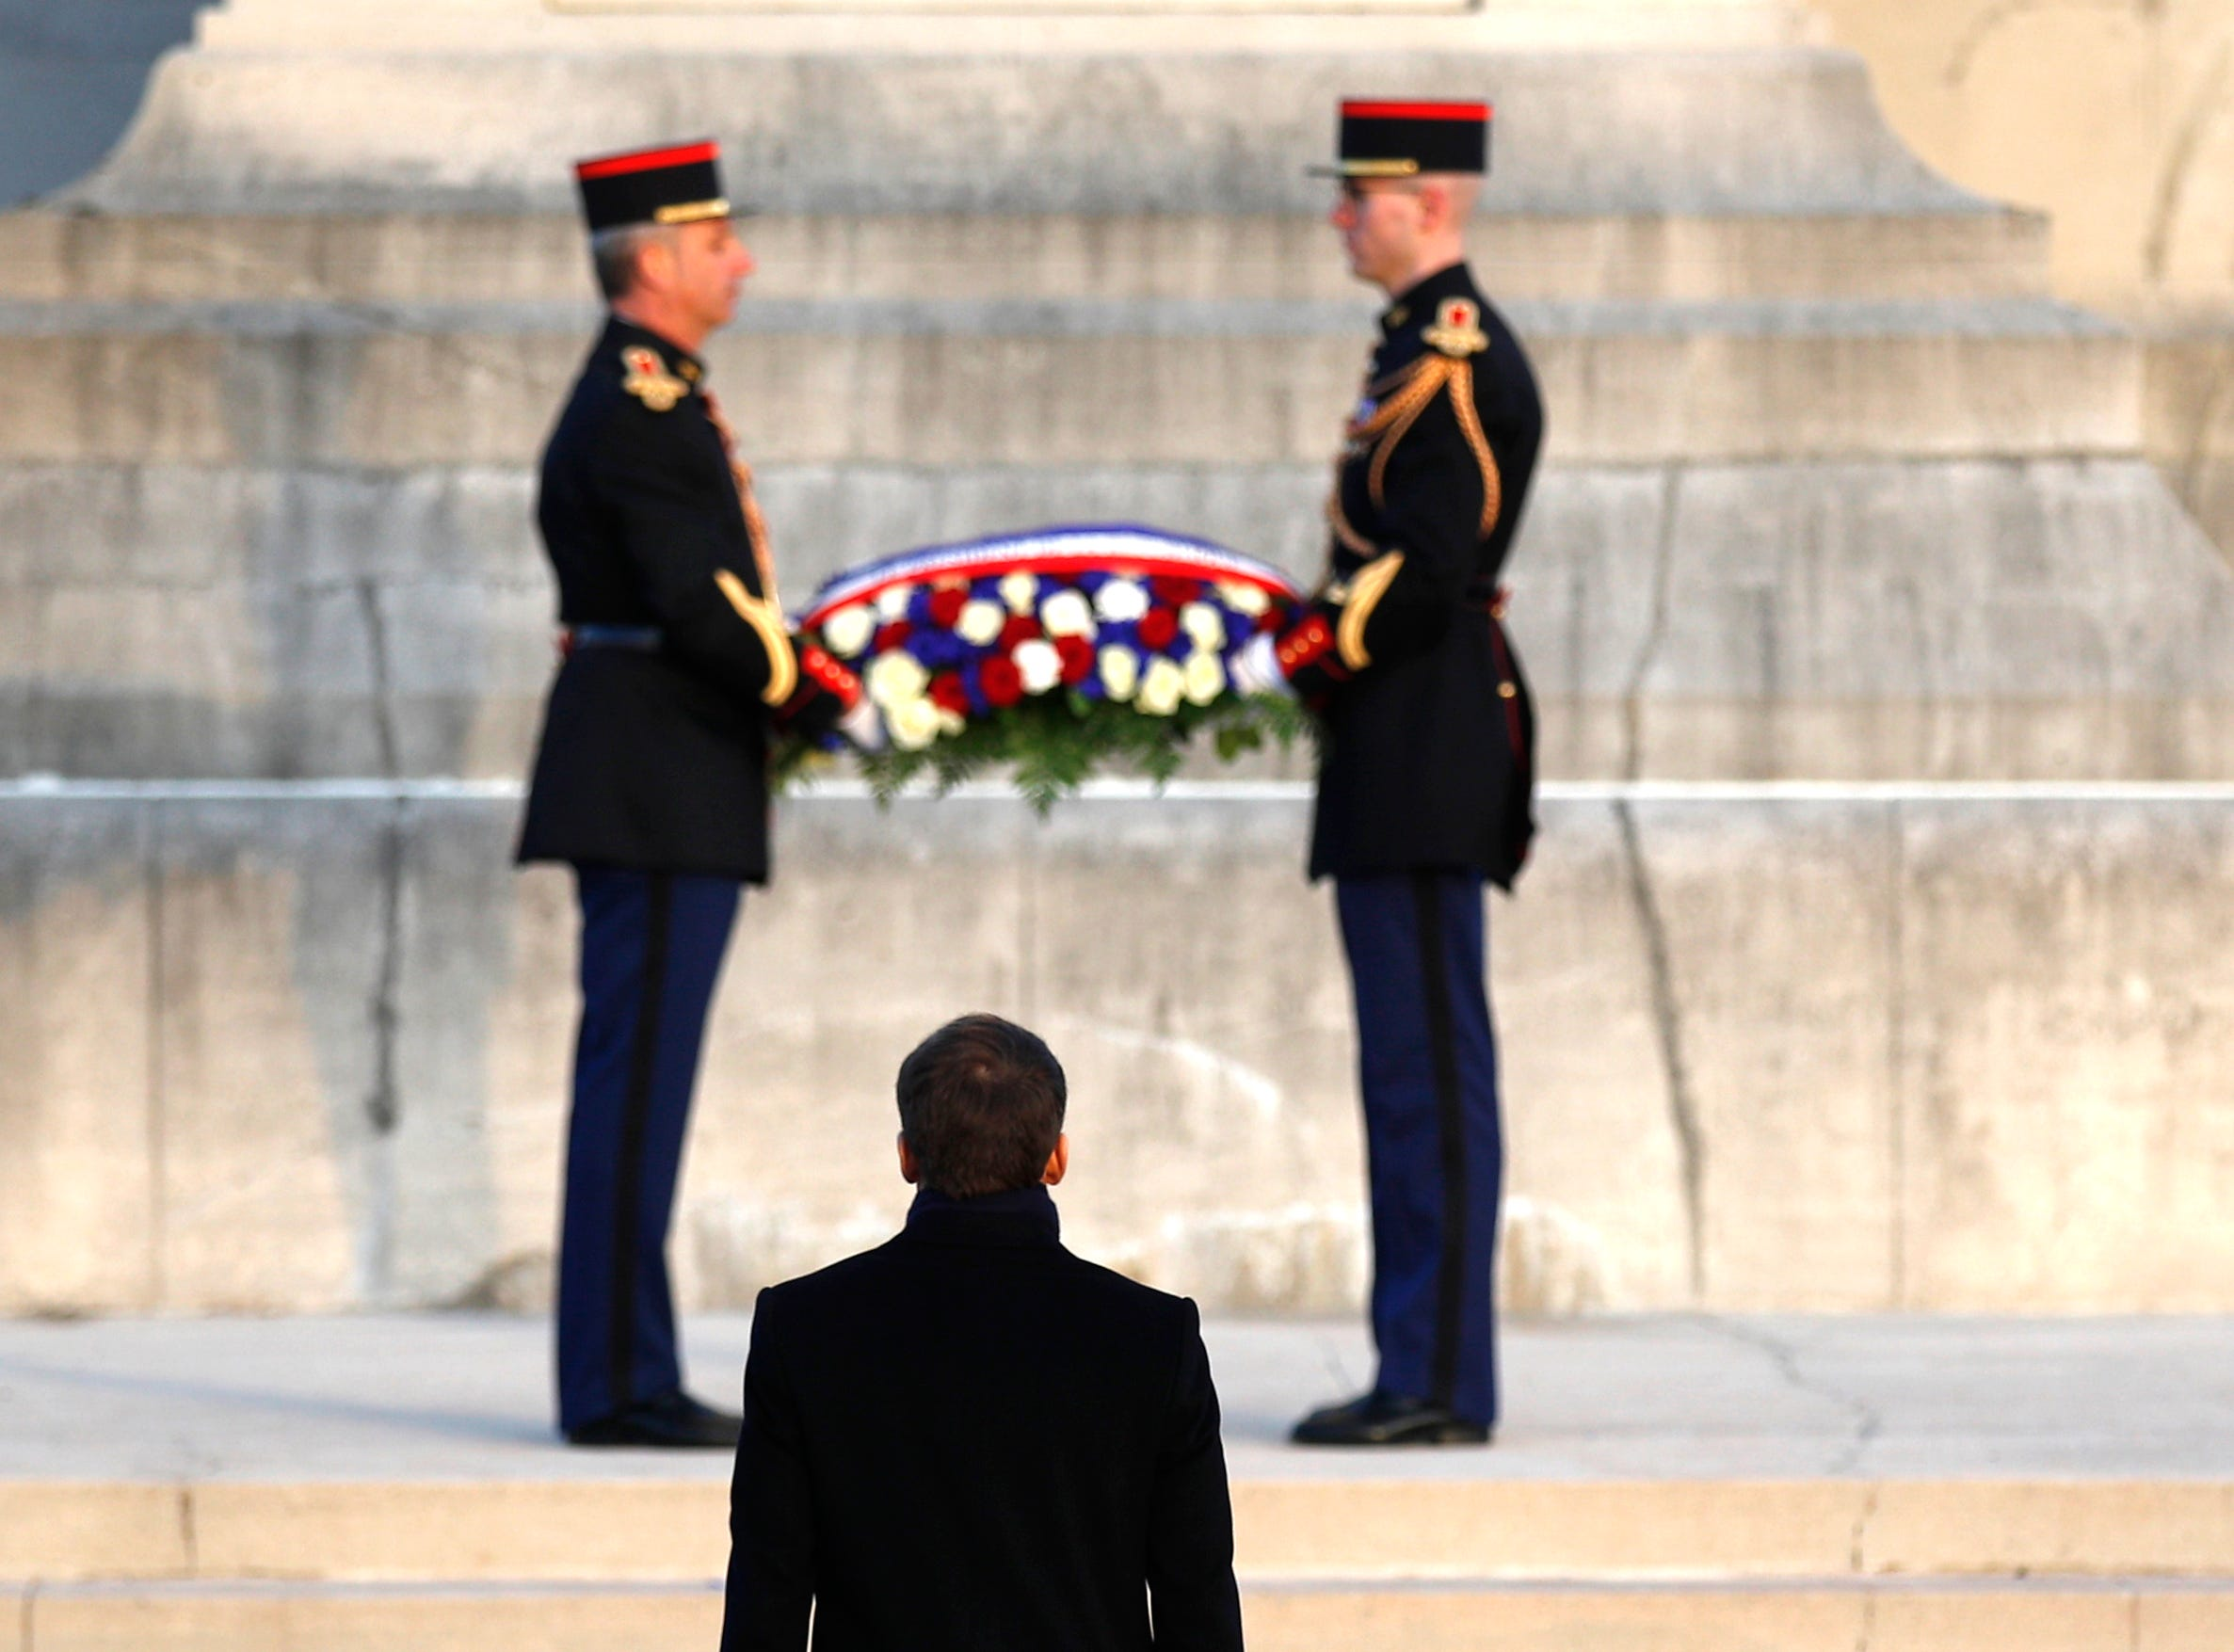 French President Emmanuel Macron is about to lay a wreath of flowers at the monument of the Notre Dame de Lorette war cemetery near Arras, northern France, Thursday, Nov.8, 2018.